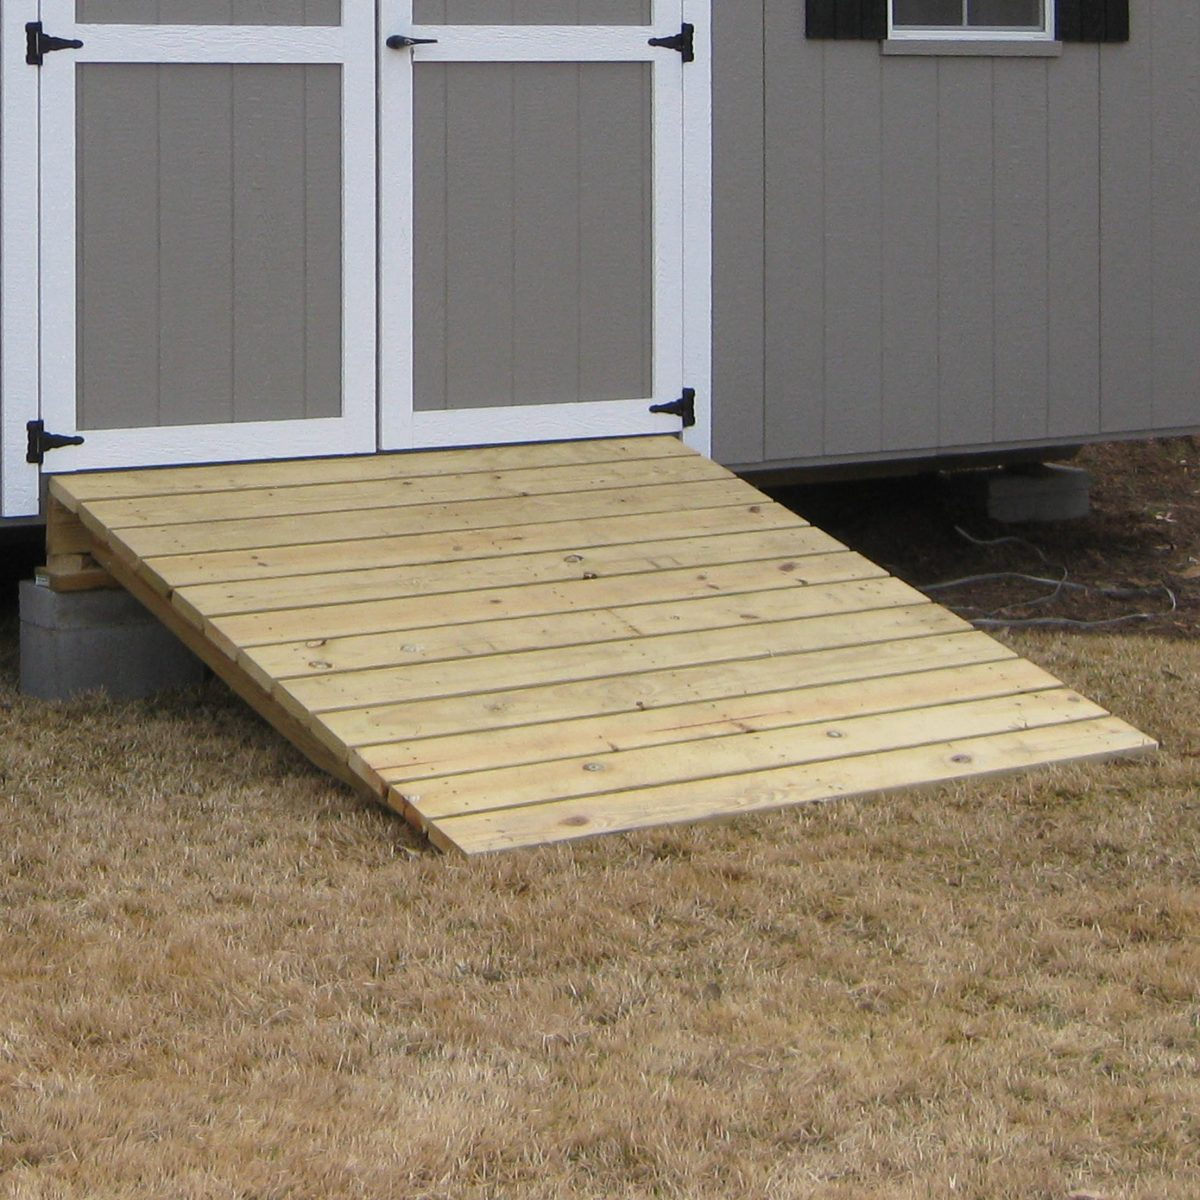 Storage Shed Ramps >> Get Custom Sheds | We Build Sheds to Your Specs in GA